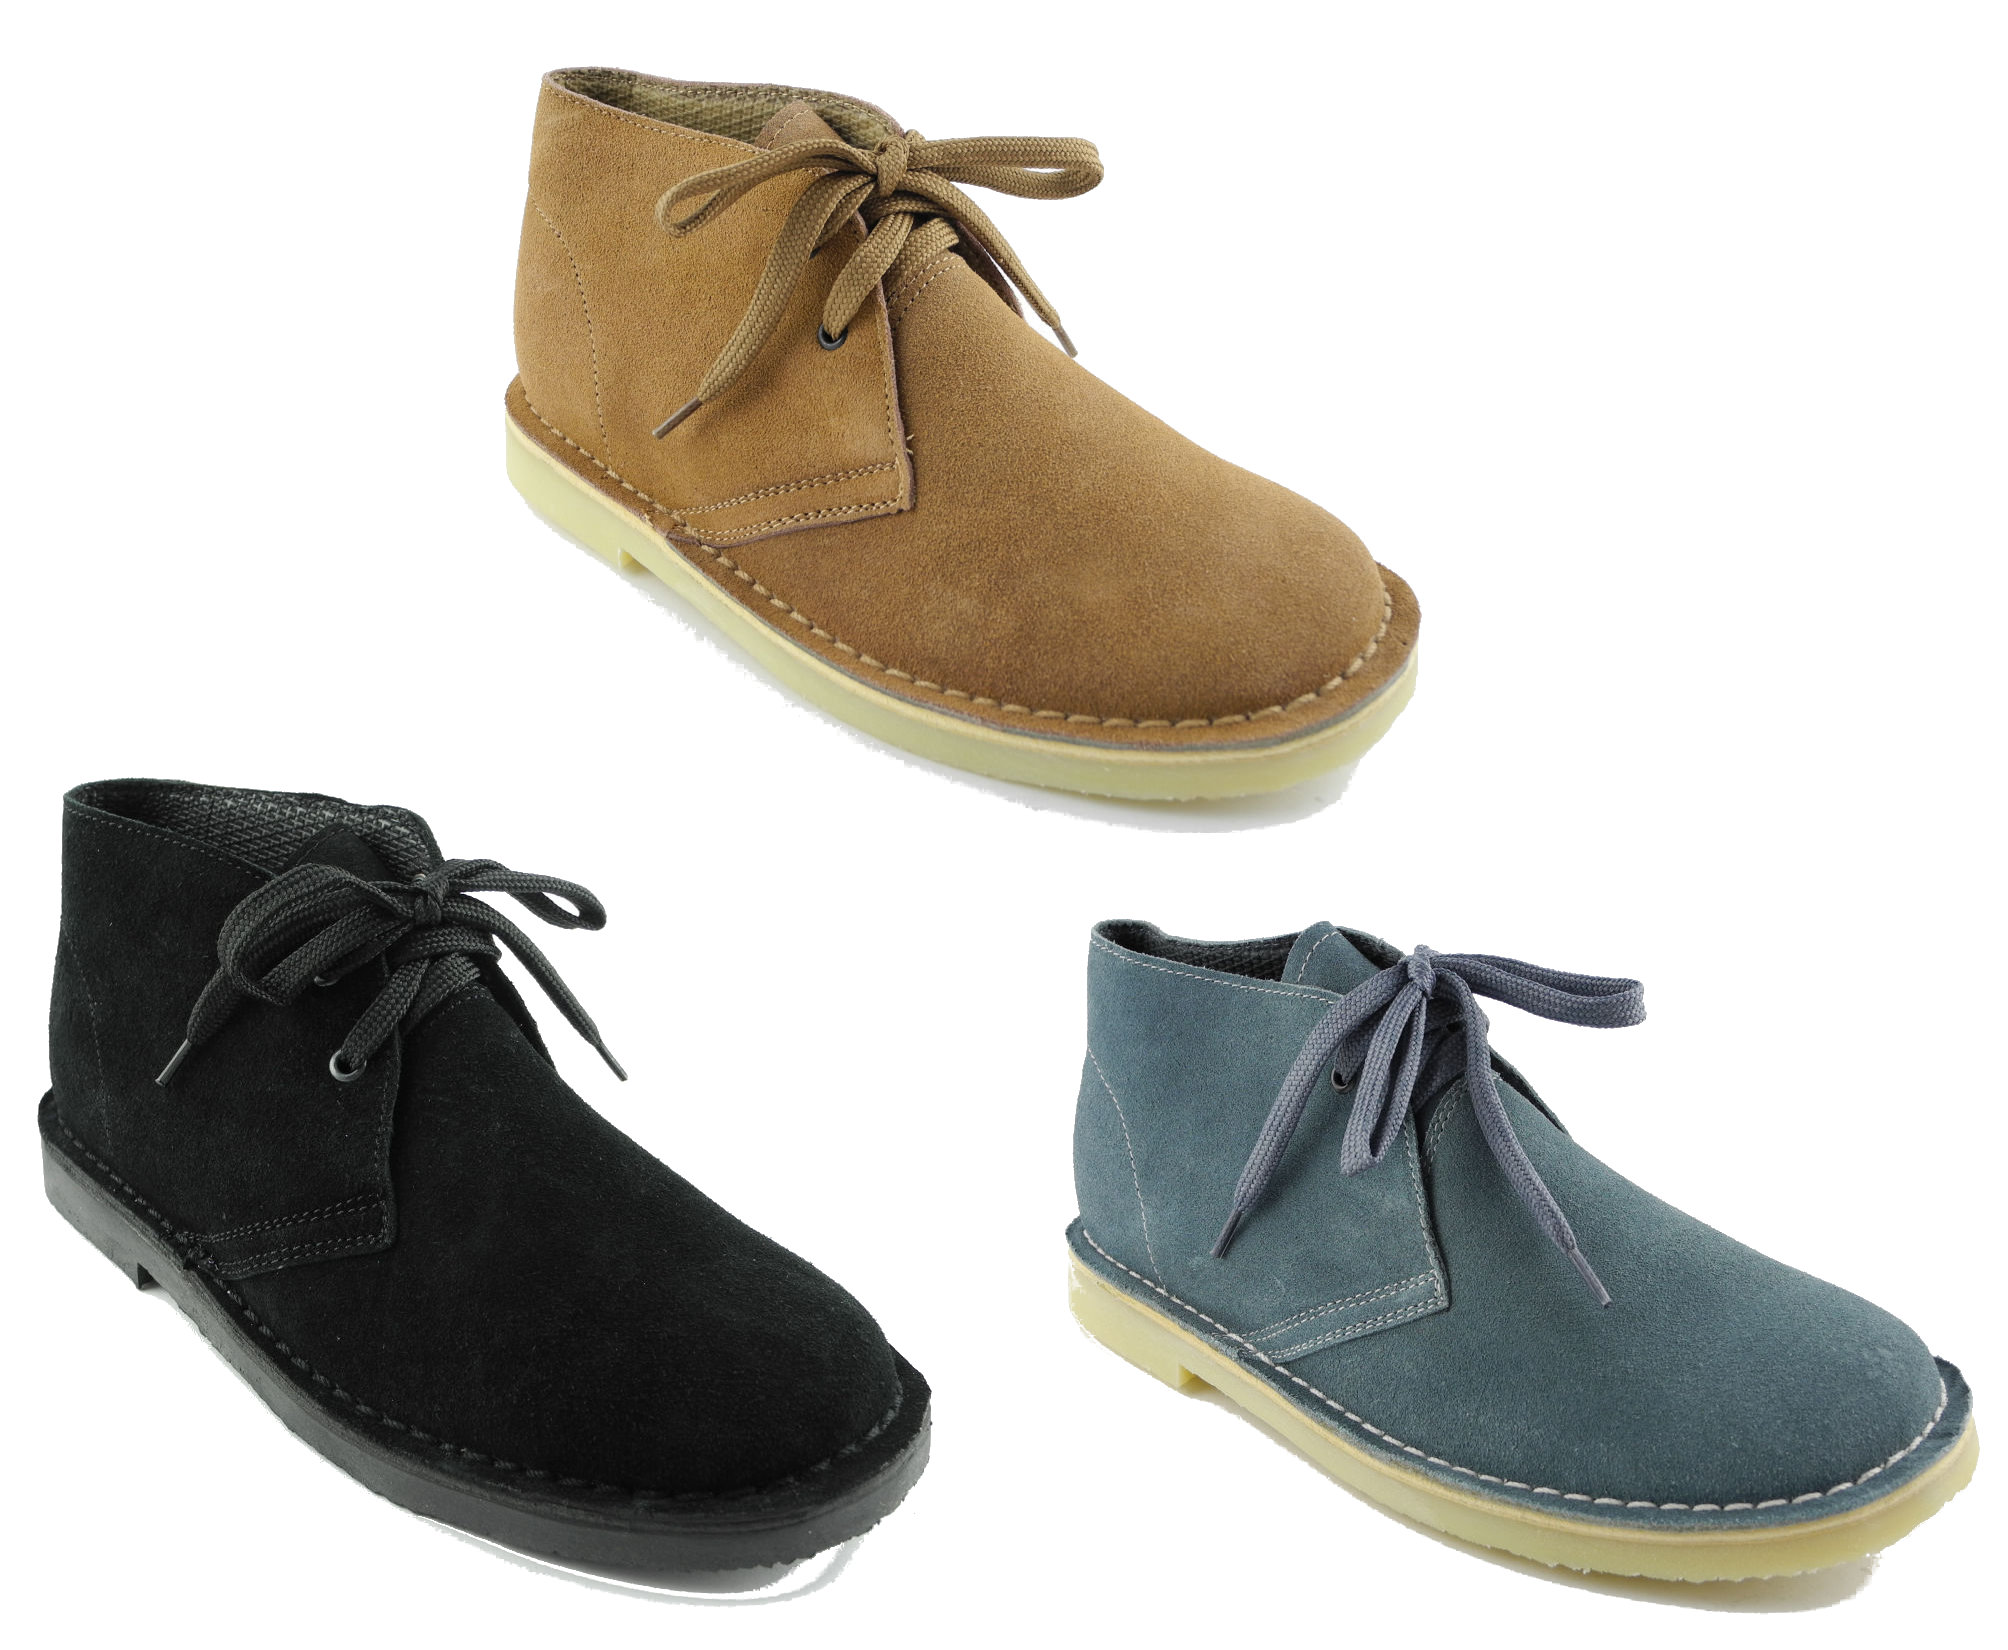 Enjoy free shipping and easy returns every day at Kohl's. Find great deals on Womens Suede Shoes at Kohl's today!